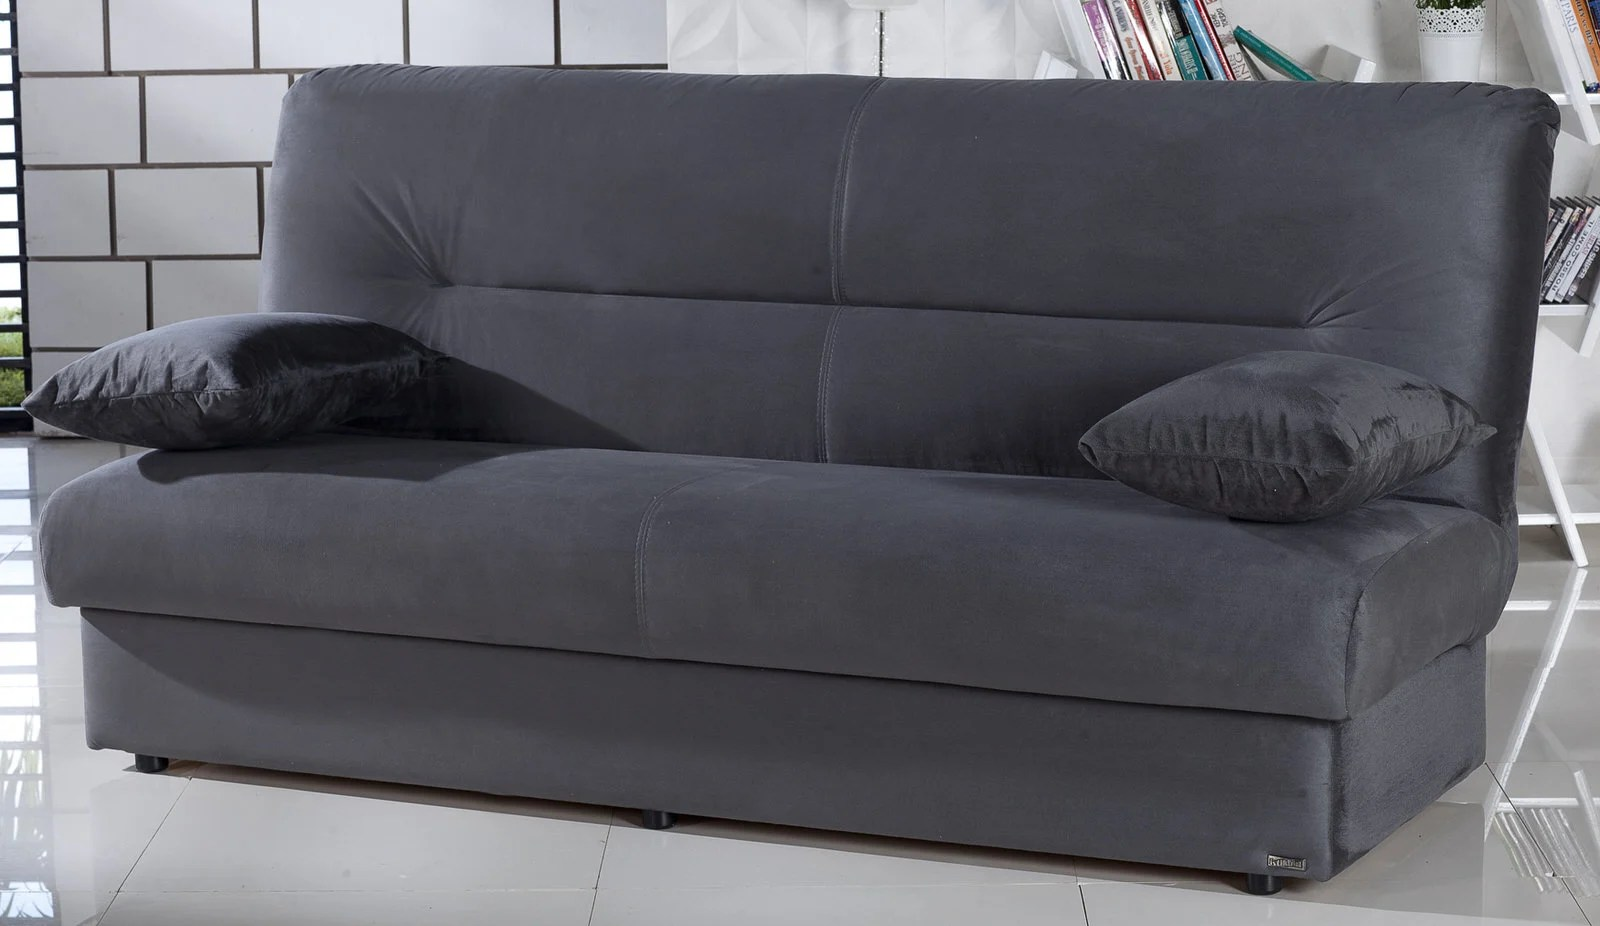 Regata Rainbow Dark Gray Convertible Sofa Bed by Istikbal